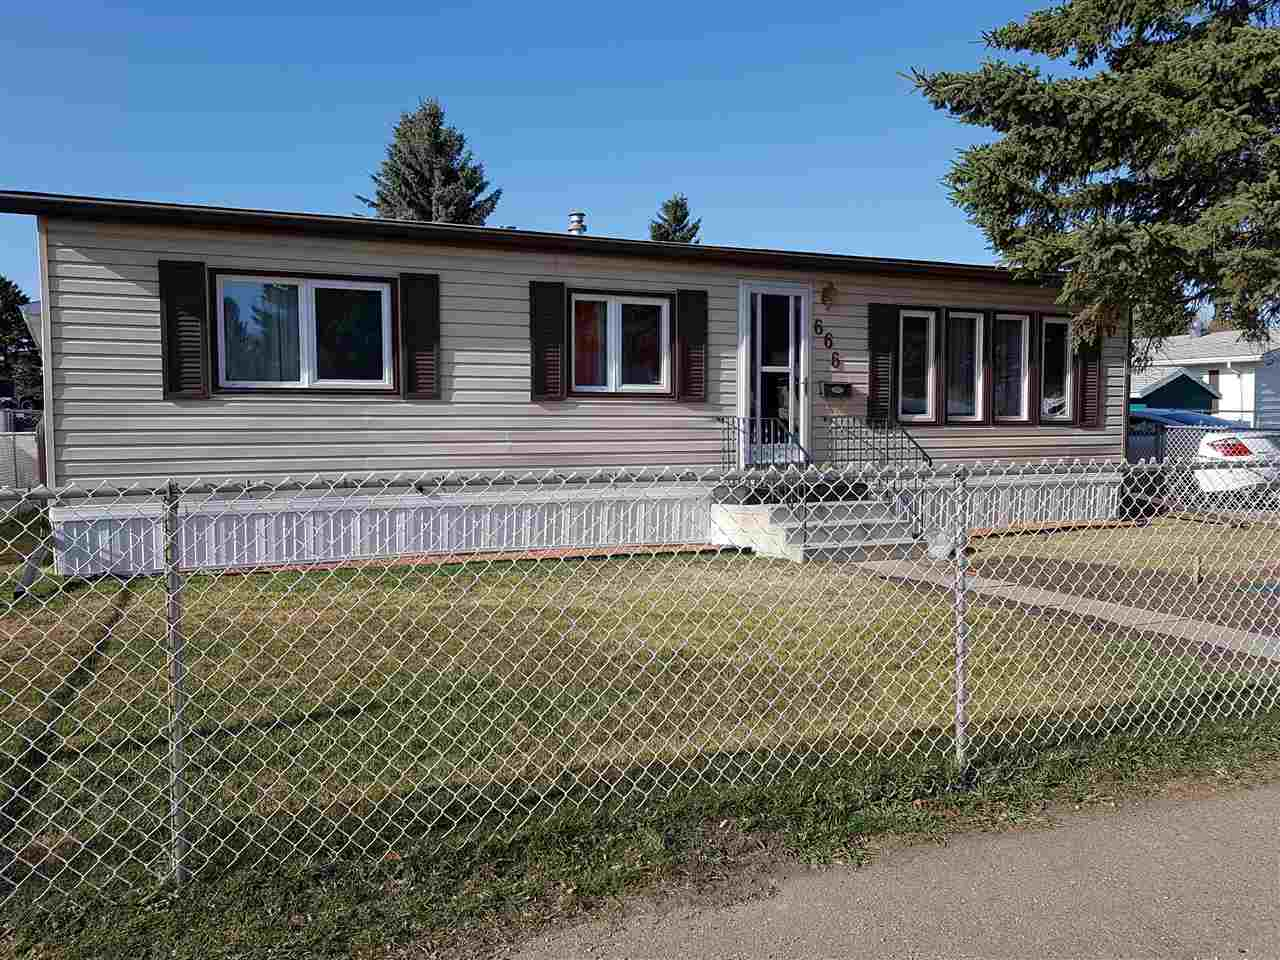 Steal of a deal. Three bedroom mobile home, original owner, immaculately kept!  Newer windows and doors replaced furnace and hot water tank, security shutters on the back windows, 100 amp service and newer appliances. All nestled in the evergreen community which offers its own society.